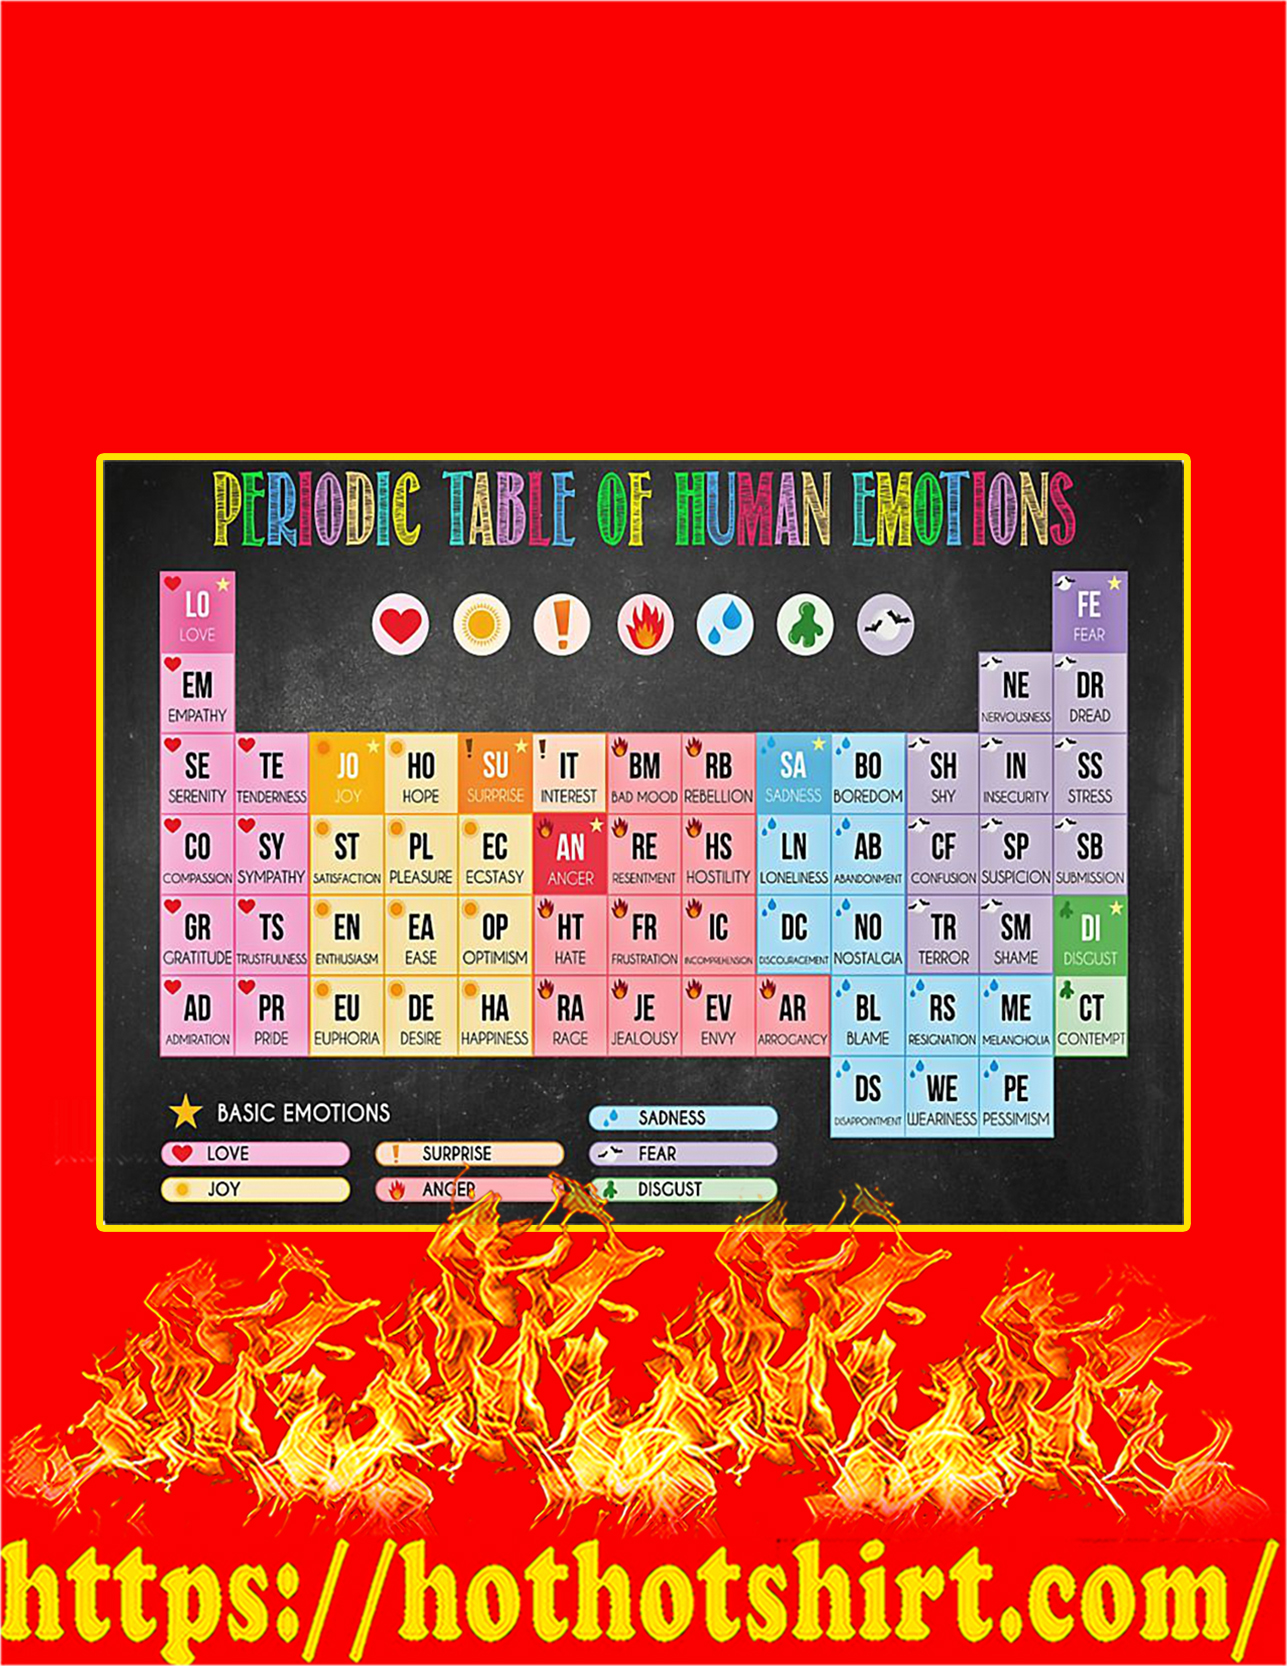 Social worker Periodic table of human emotions poster - A4